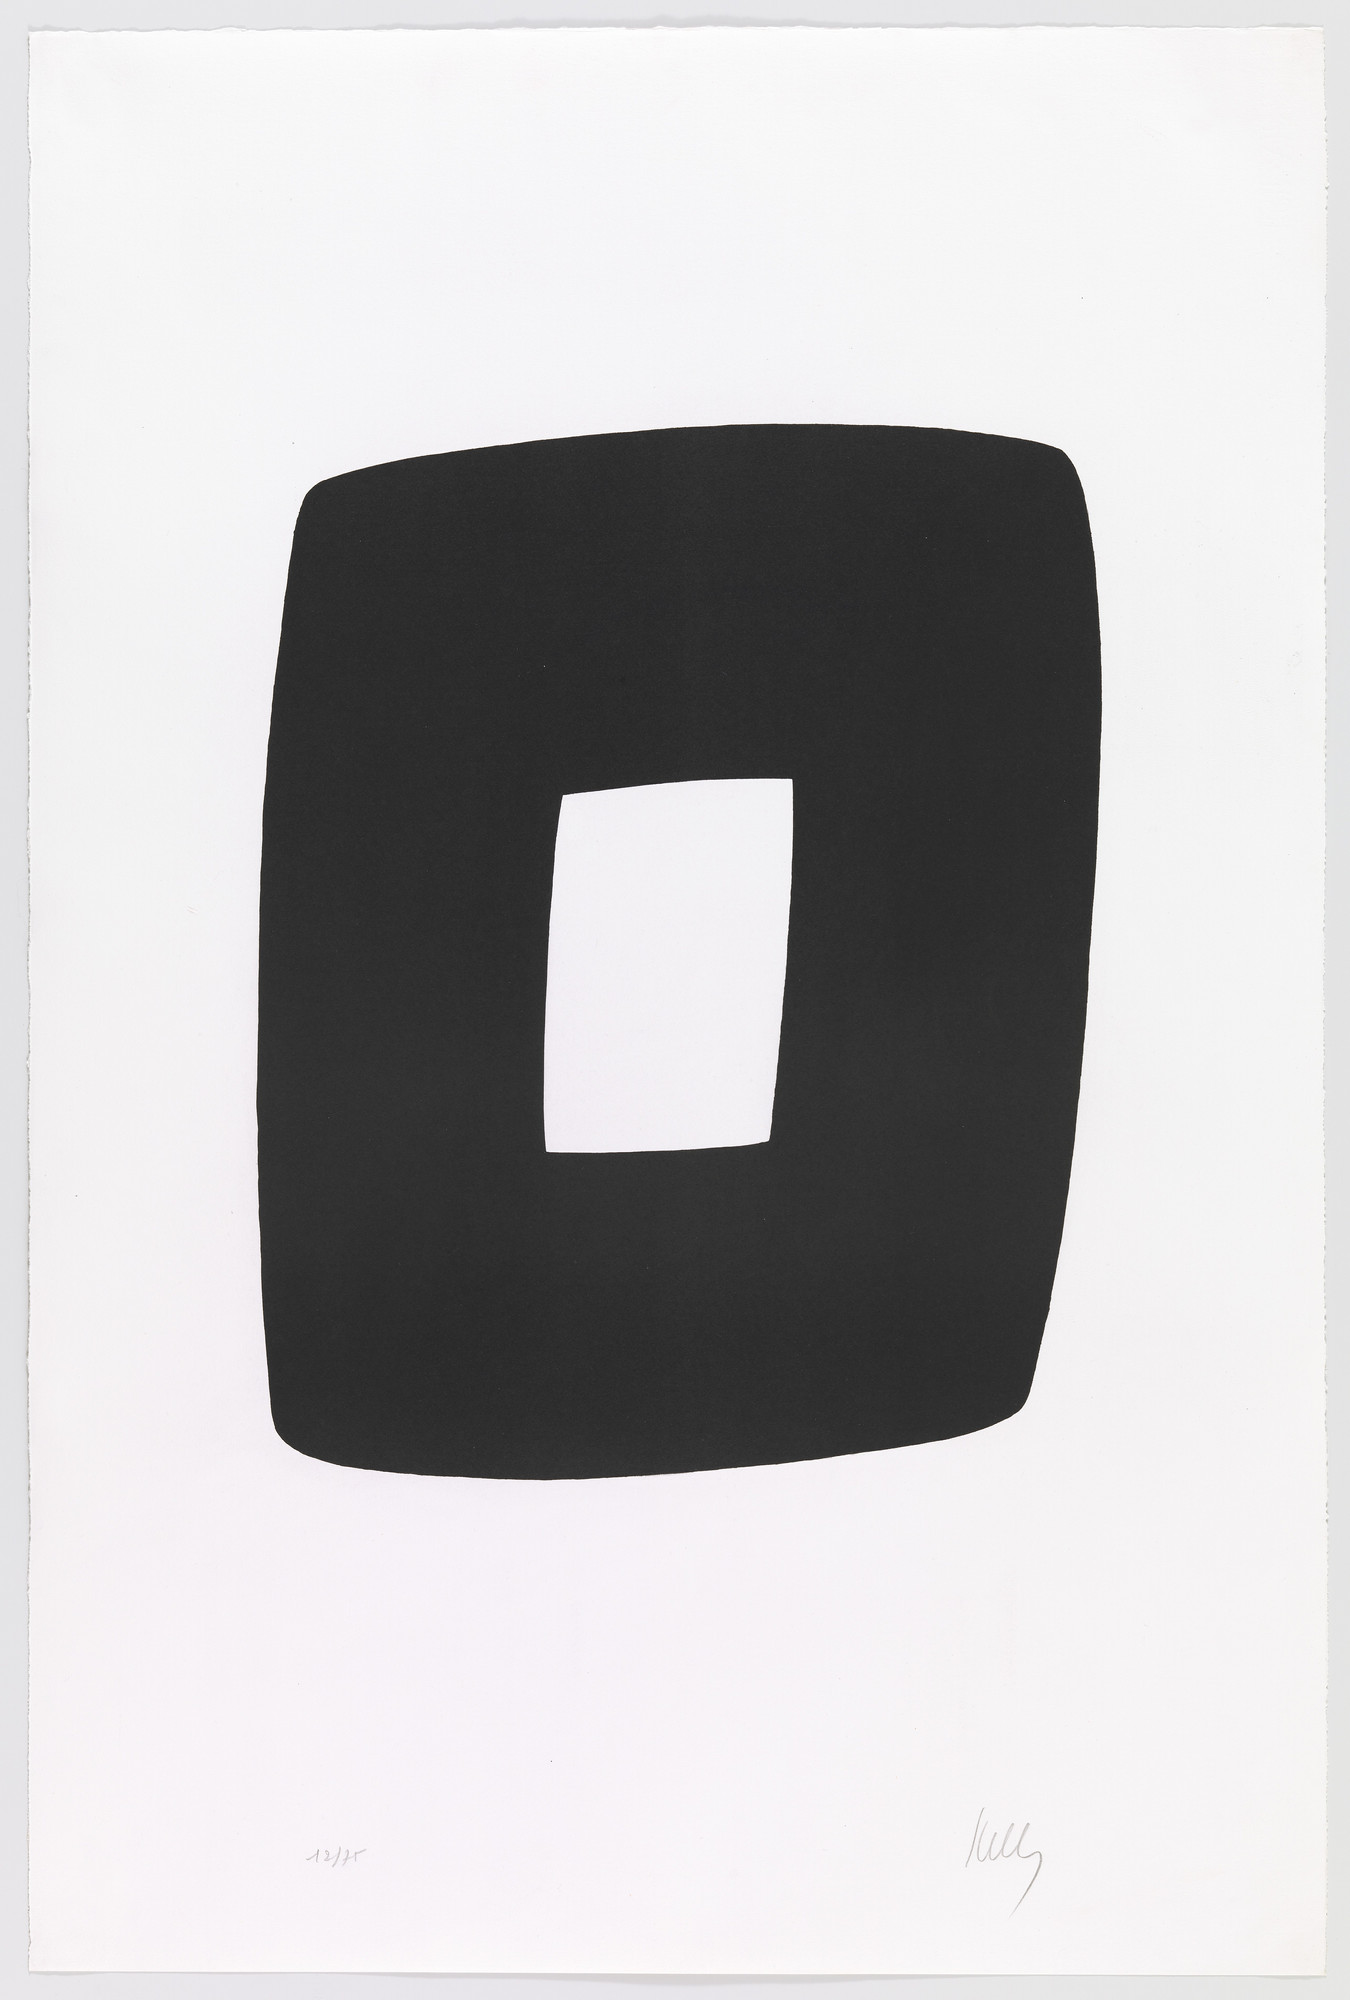 Ellsworth Kelly. Black with White (Noir avec blanc) from Suite of Twenty-Seven Color Lithographs. 1964–65